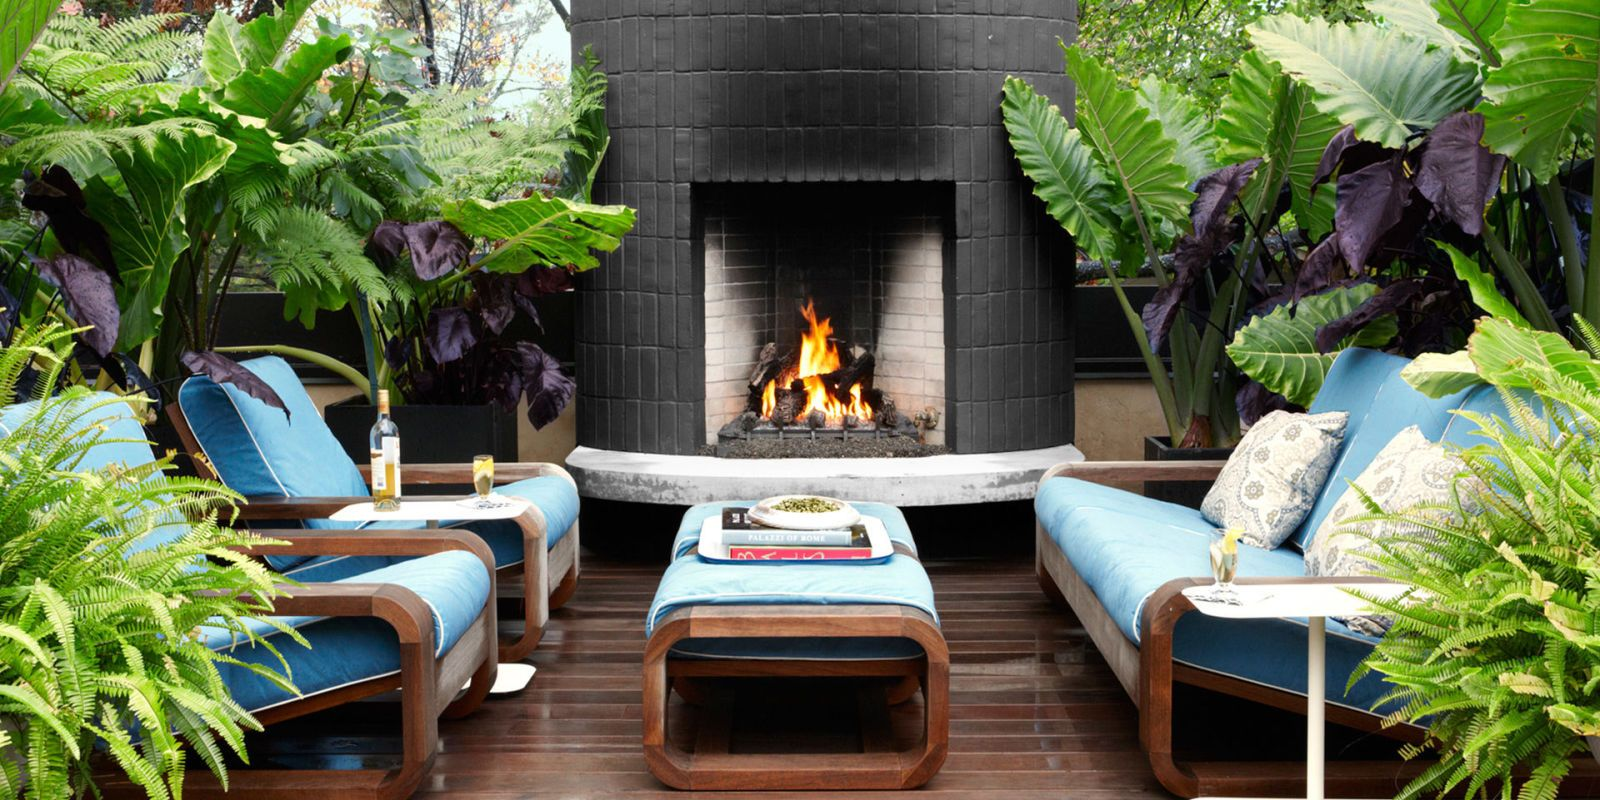 Rooftop Fireplace